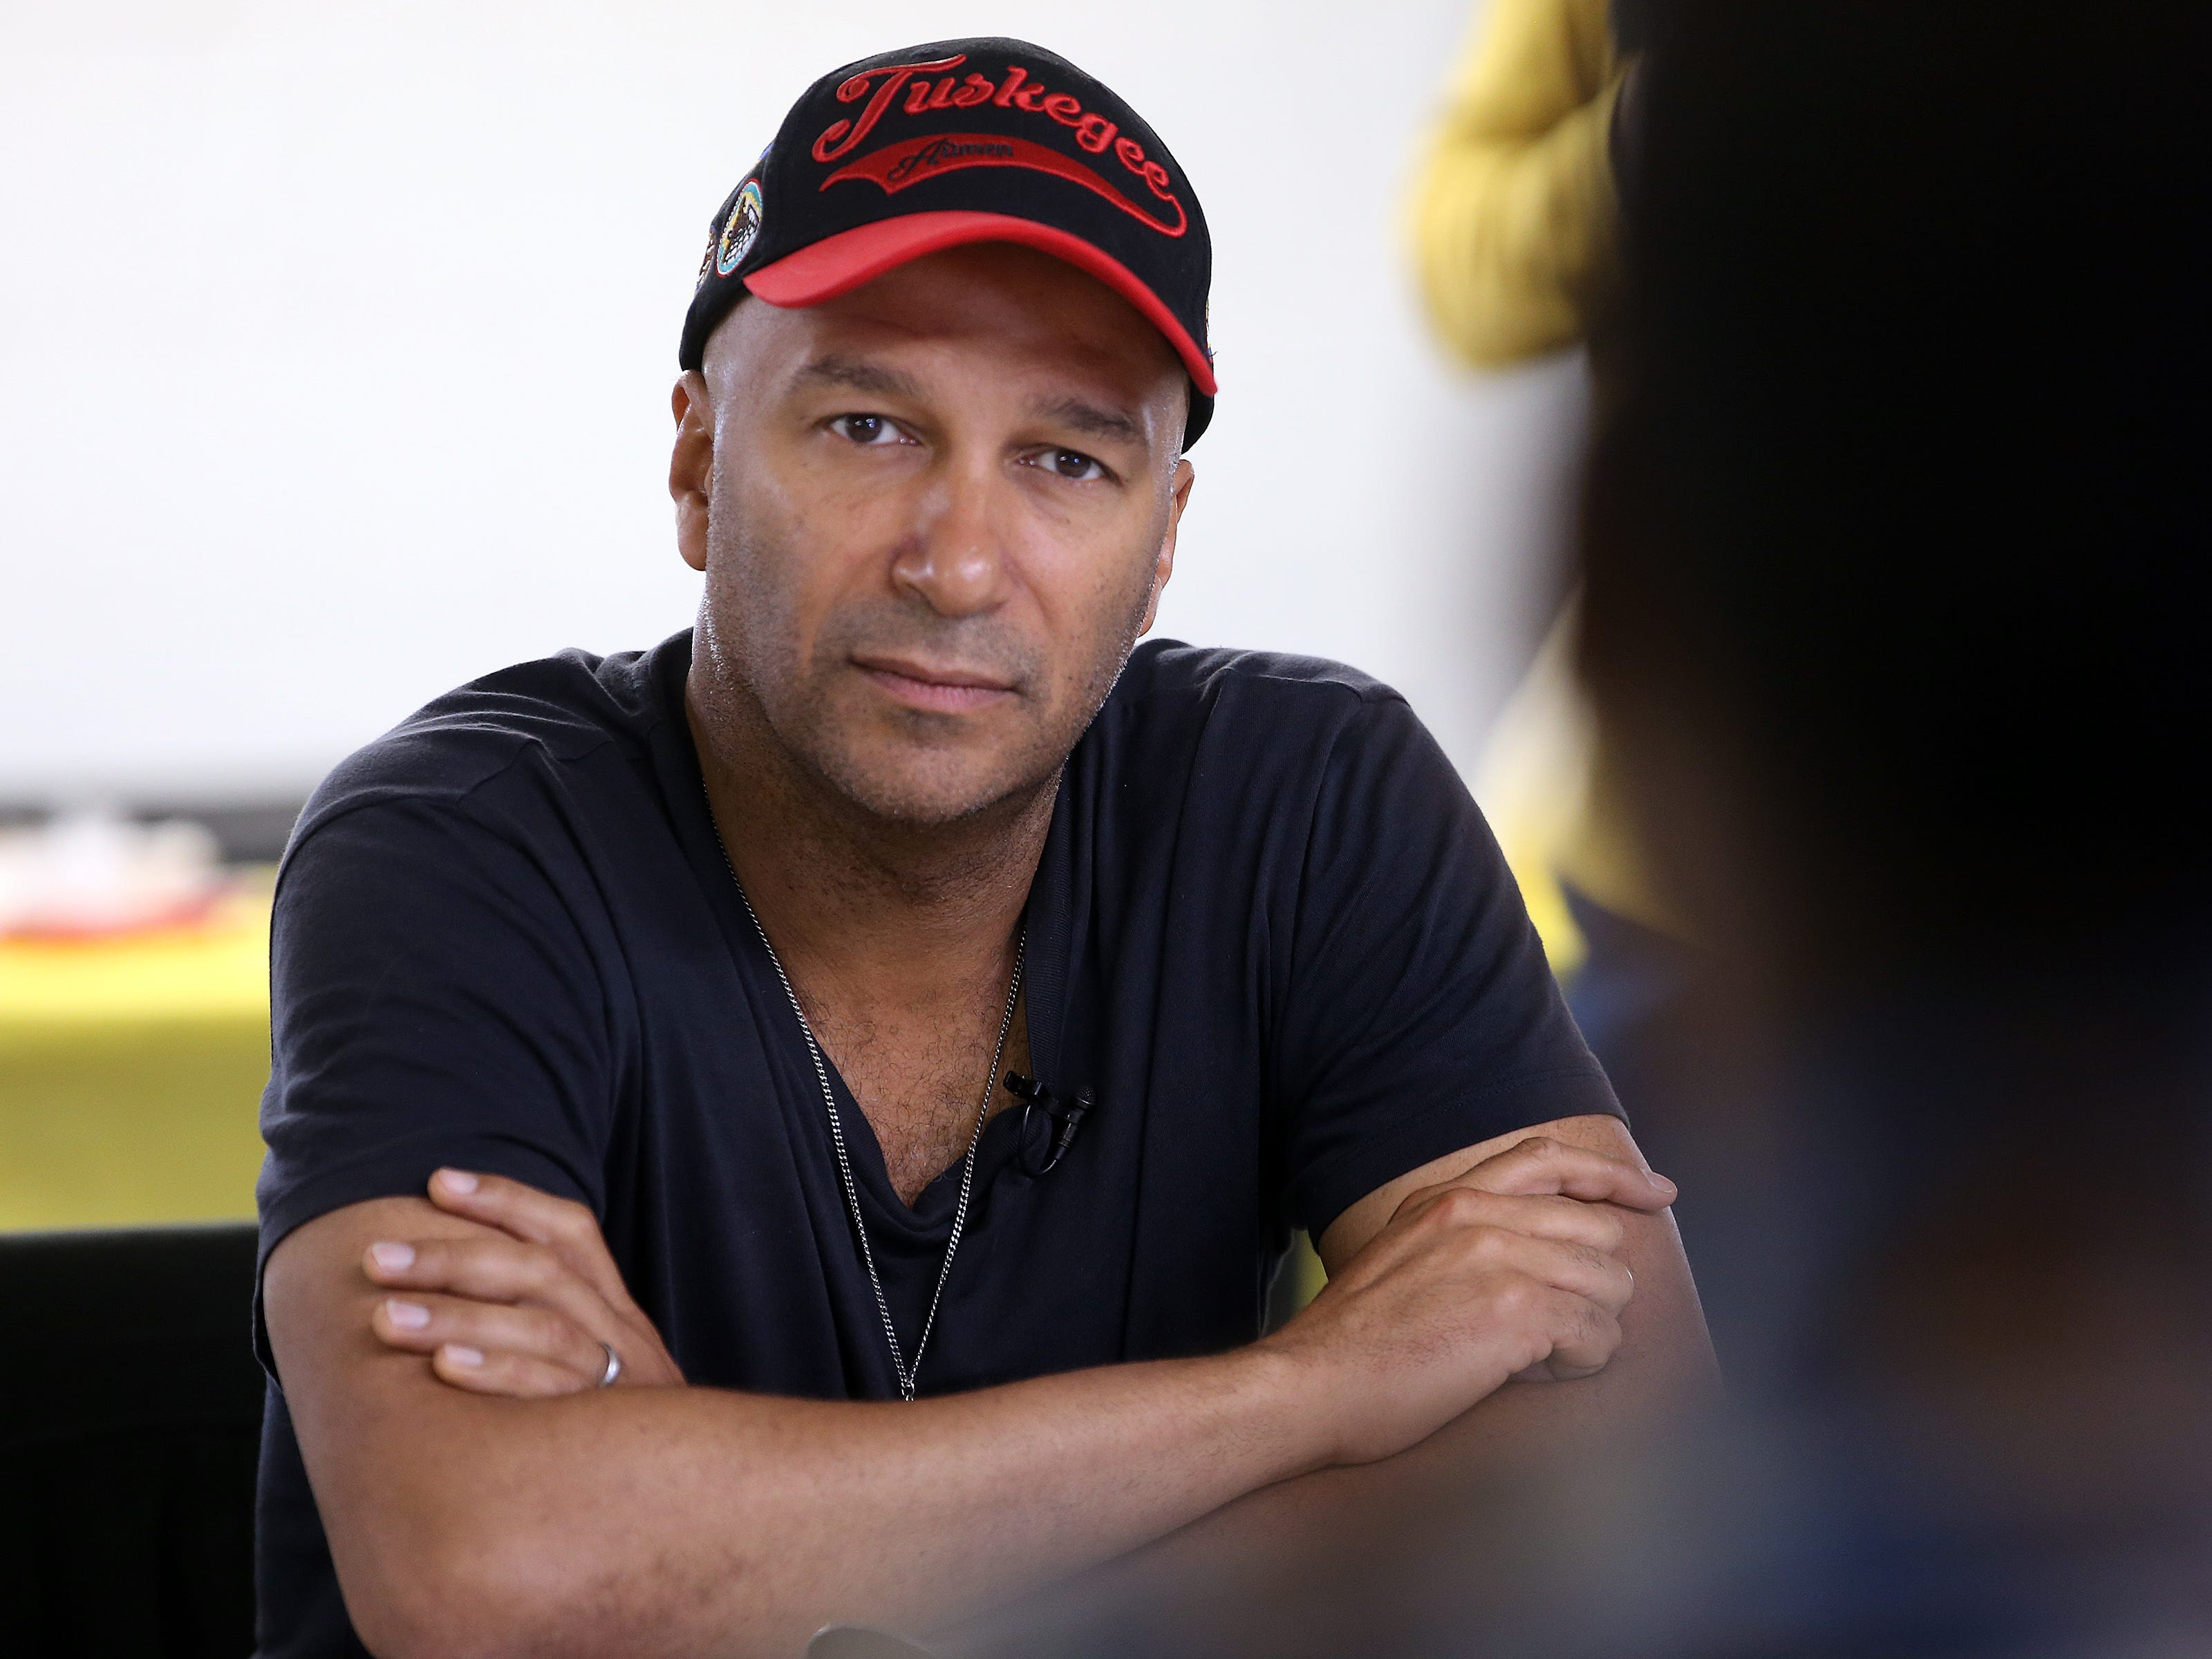 Rock icon and political activist Tom Morello, who is known for his seminal work with Rage Against the Machine, Audioslave, and the Nightwatchman, met with survivors of solitary confinement in New Jersey prisons during an event hosted by the ACLU of New Jersey and New Jersey Campaign for Alternatives to Isolated Confinement (NJ-CAIC) at the Allen Chapel A.M.E. Church in Asbury Park, NJ Tuesday May 7, 2019.